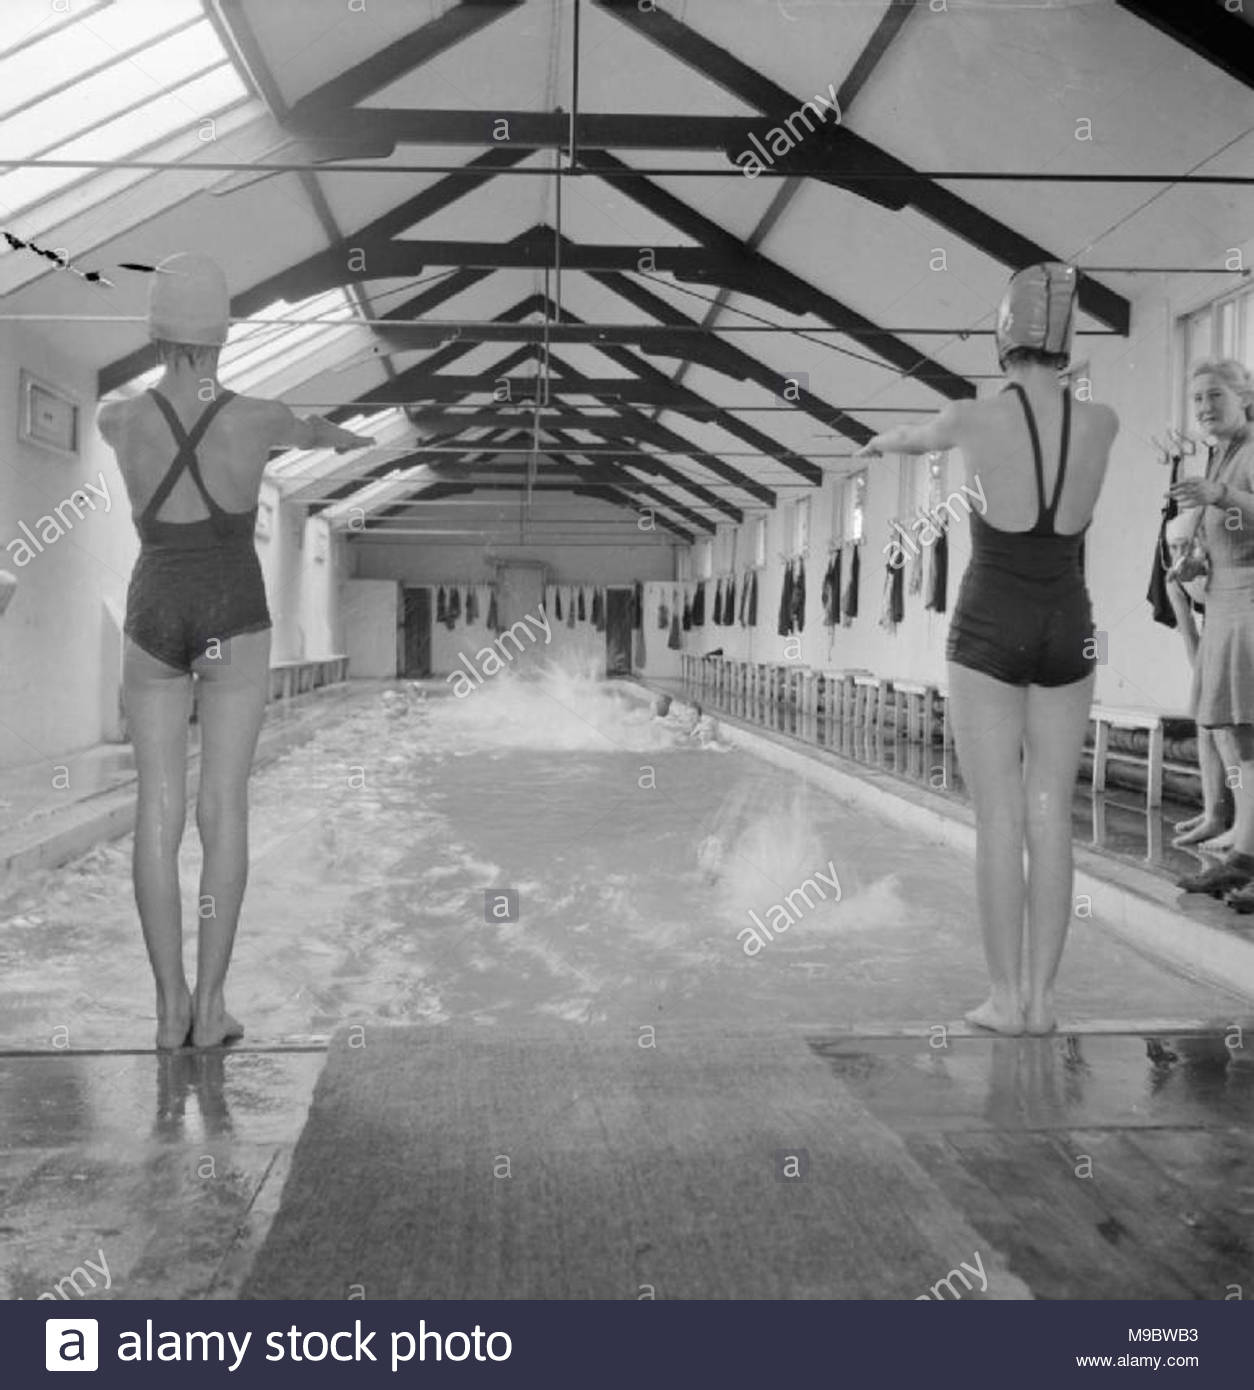 Dive Pool Black And White Stock Photos Images Alamy